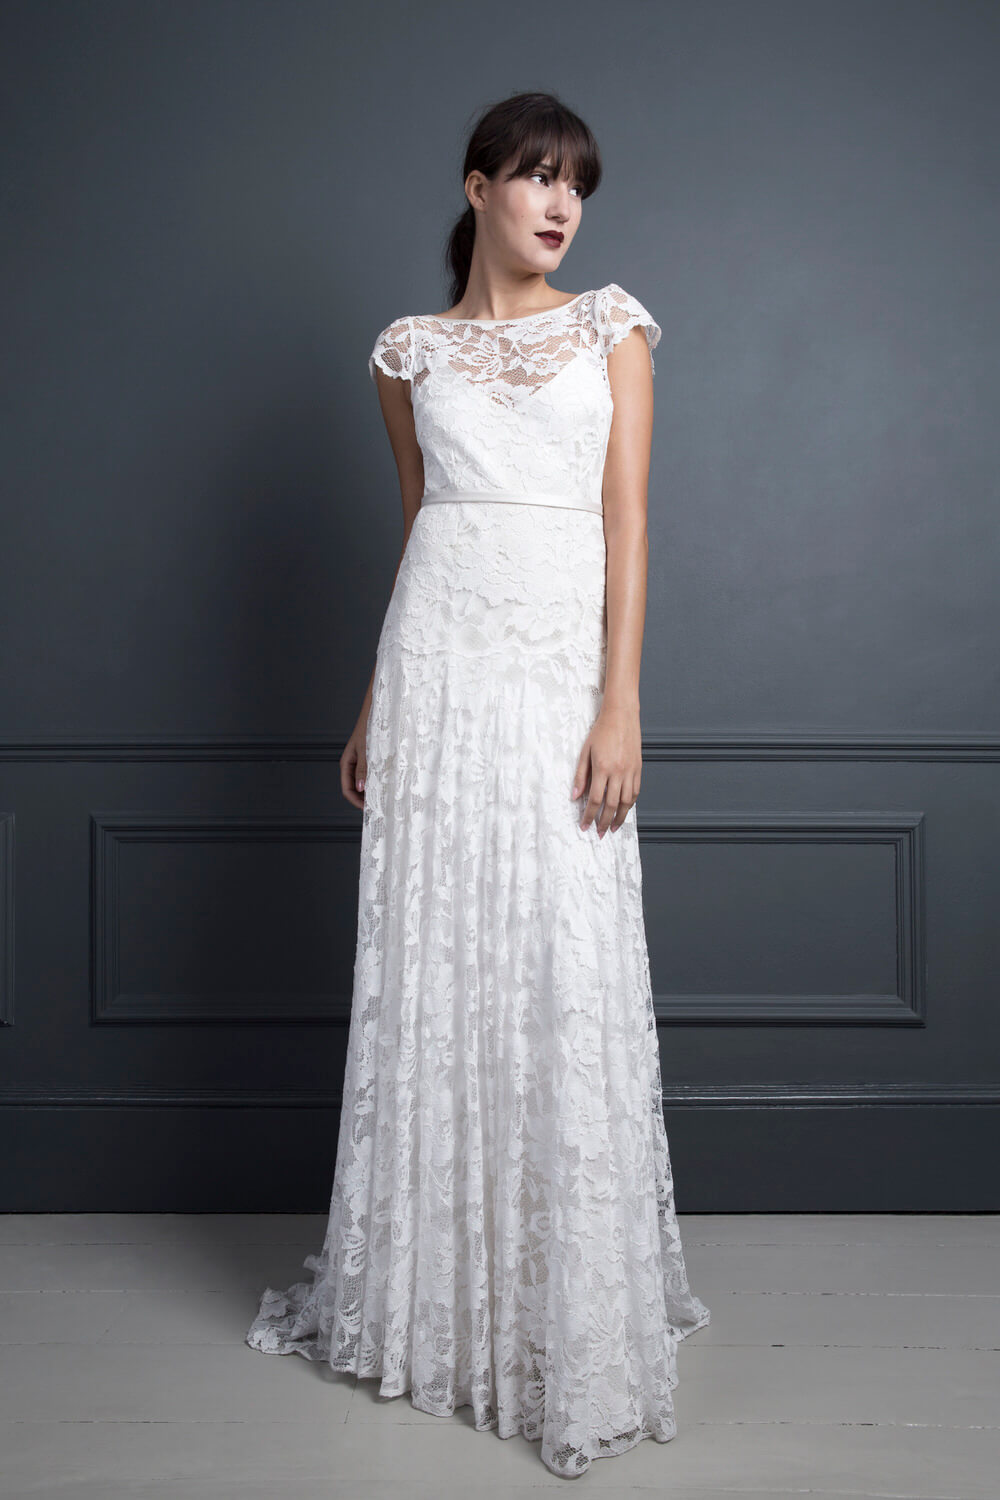 81118c6e11507 Halfpenny London Jessica - 19 of the Best most Beautiful Wedding Dresses  that All 2020 Brides